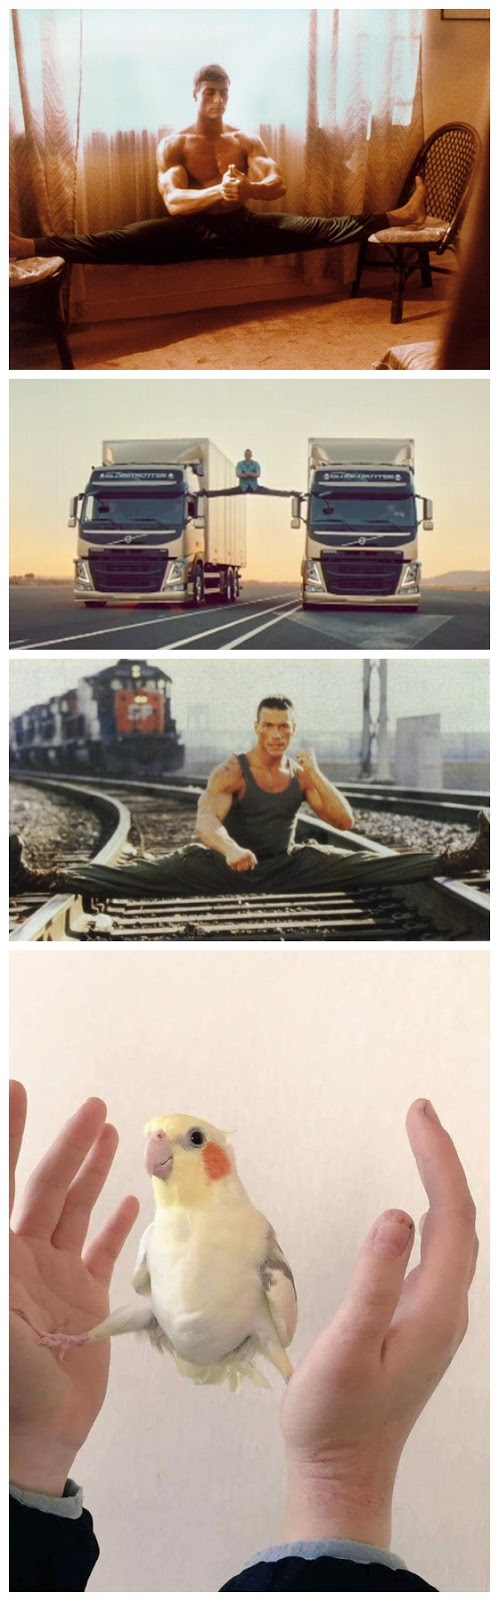 Funny Jean-Claude Van Damme Fan Joke Picture